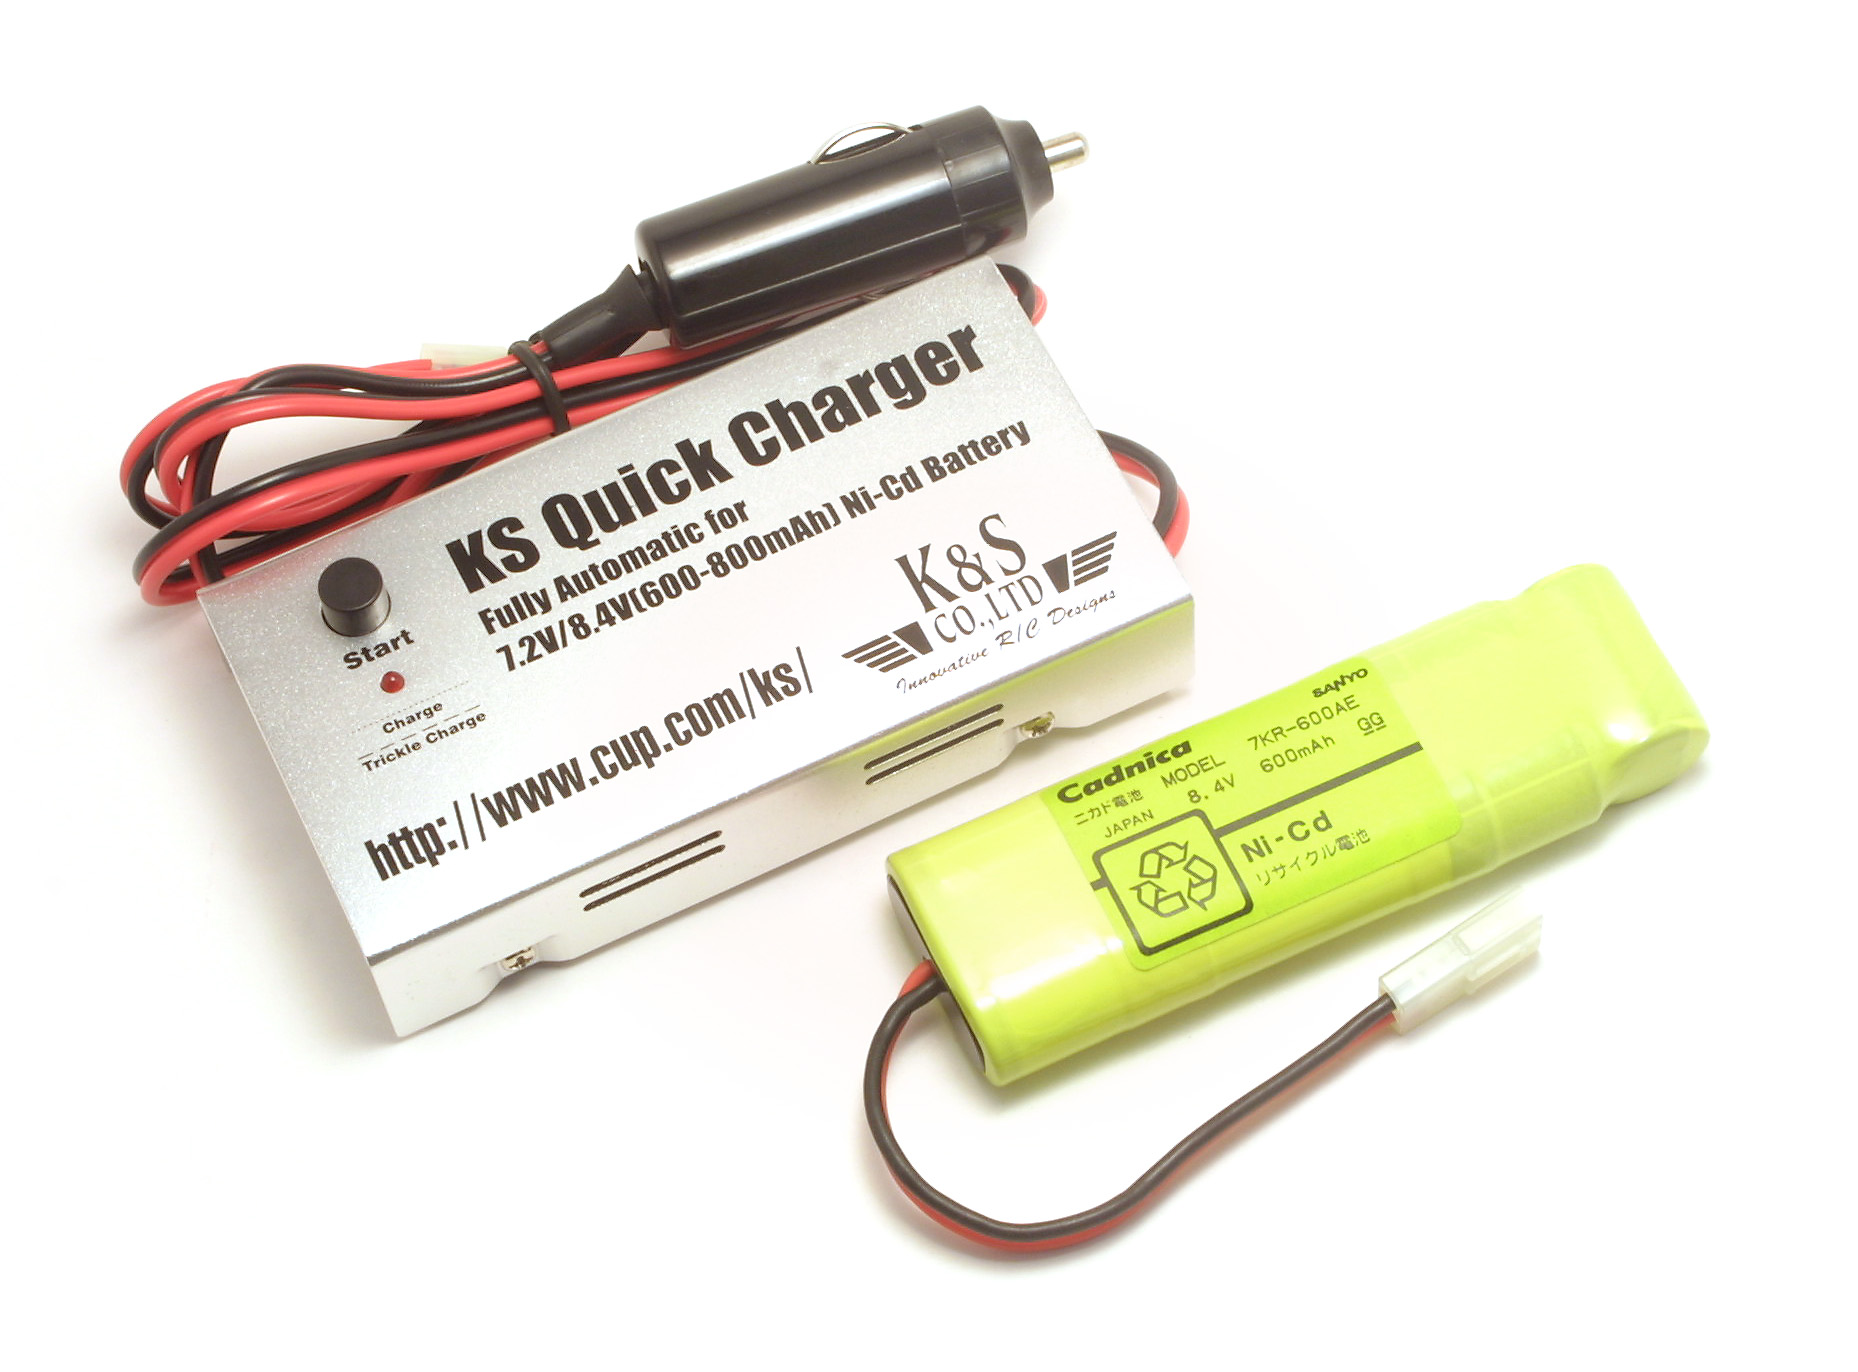 Discontinued Ks Rc Japan Radio Control Aircraft Car Nicad Battery Charger By Fet Irf9530 No Image